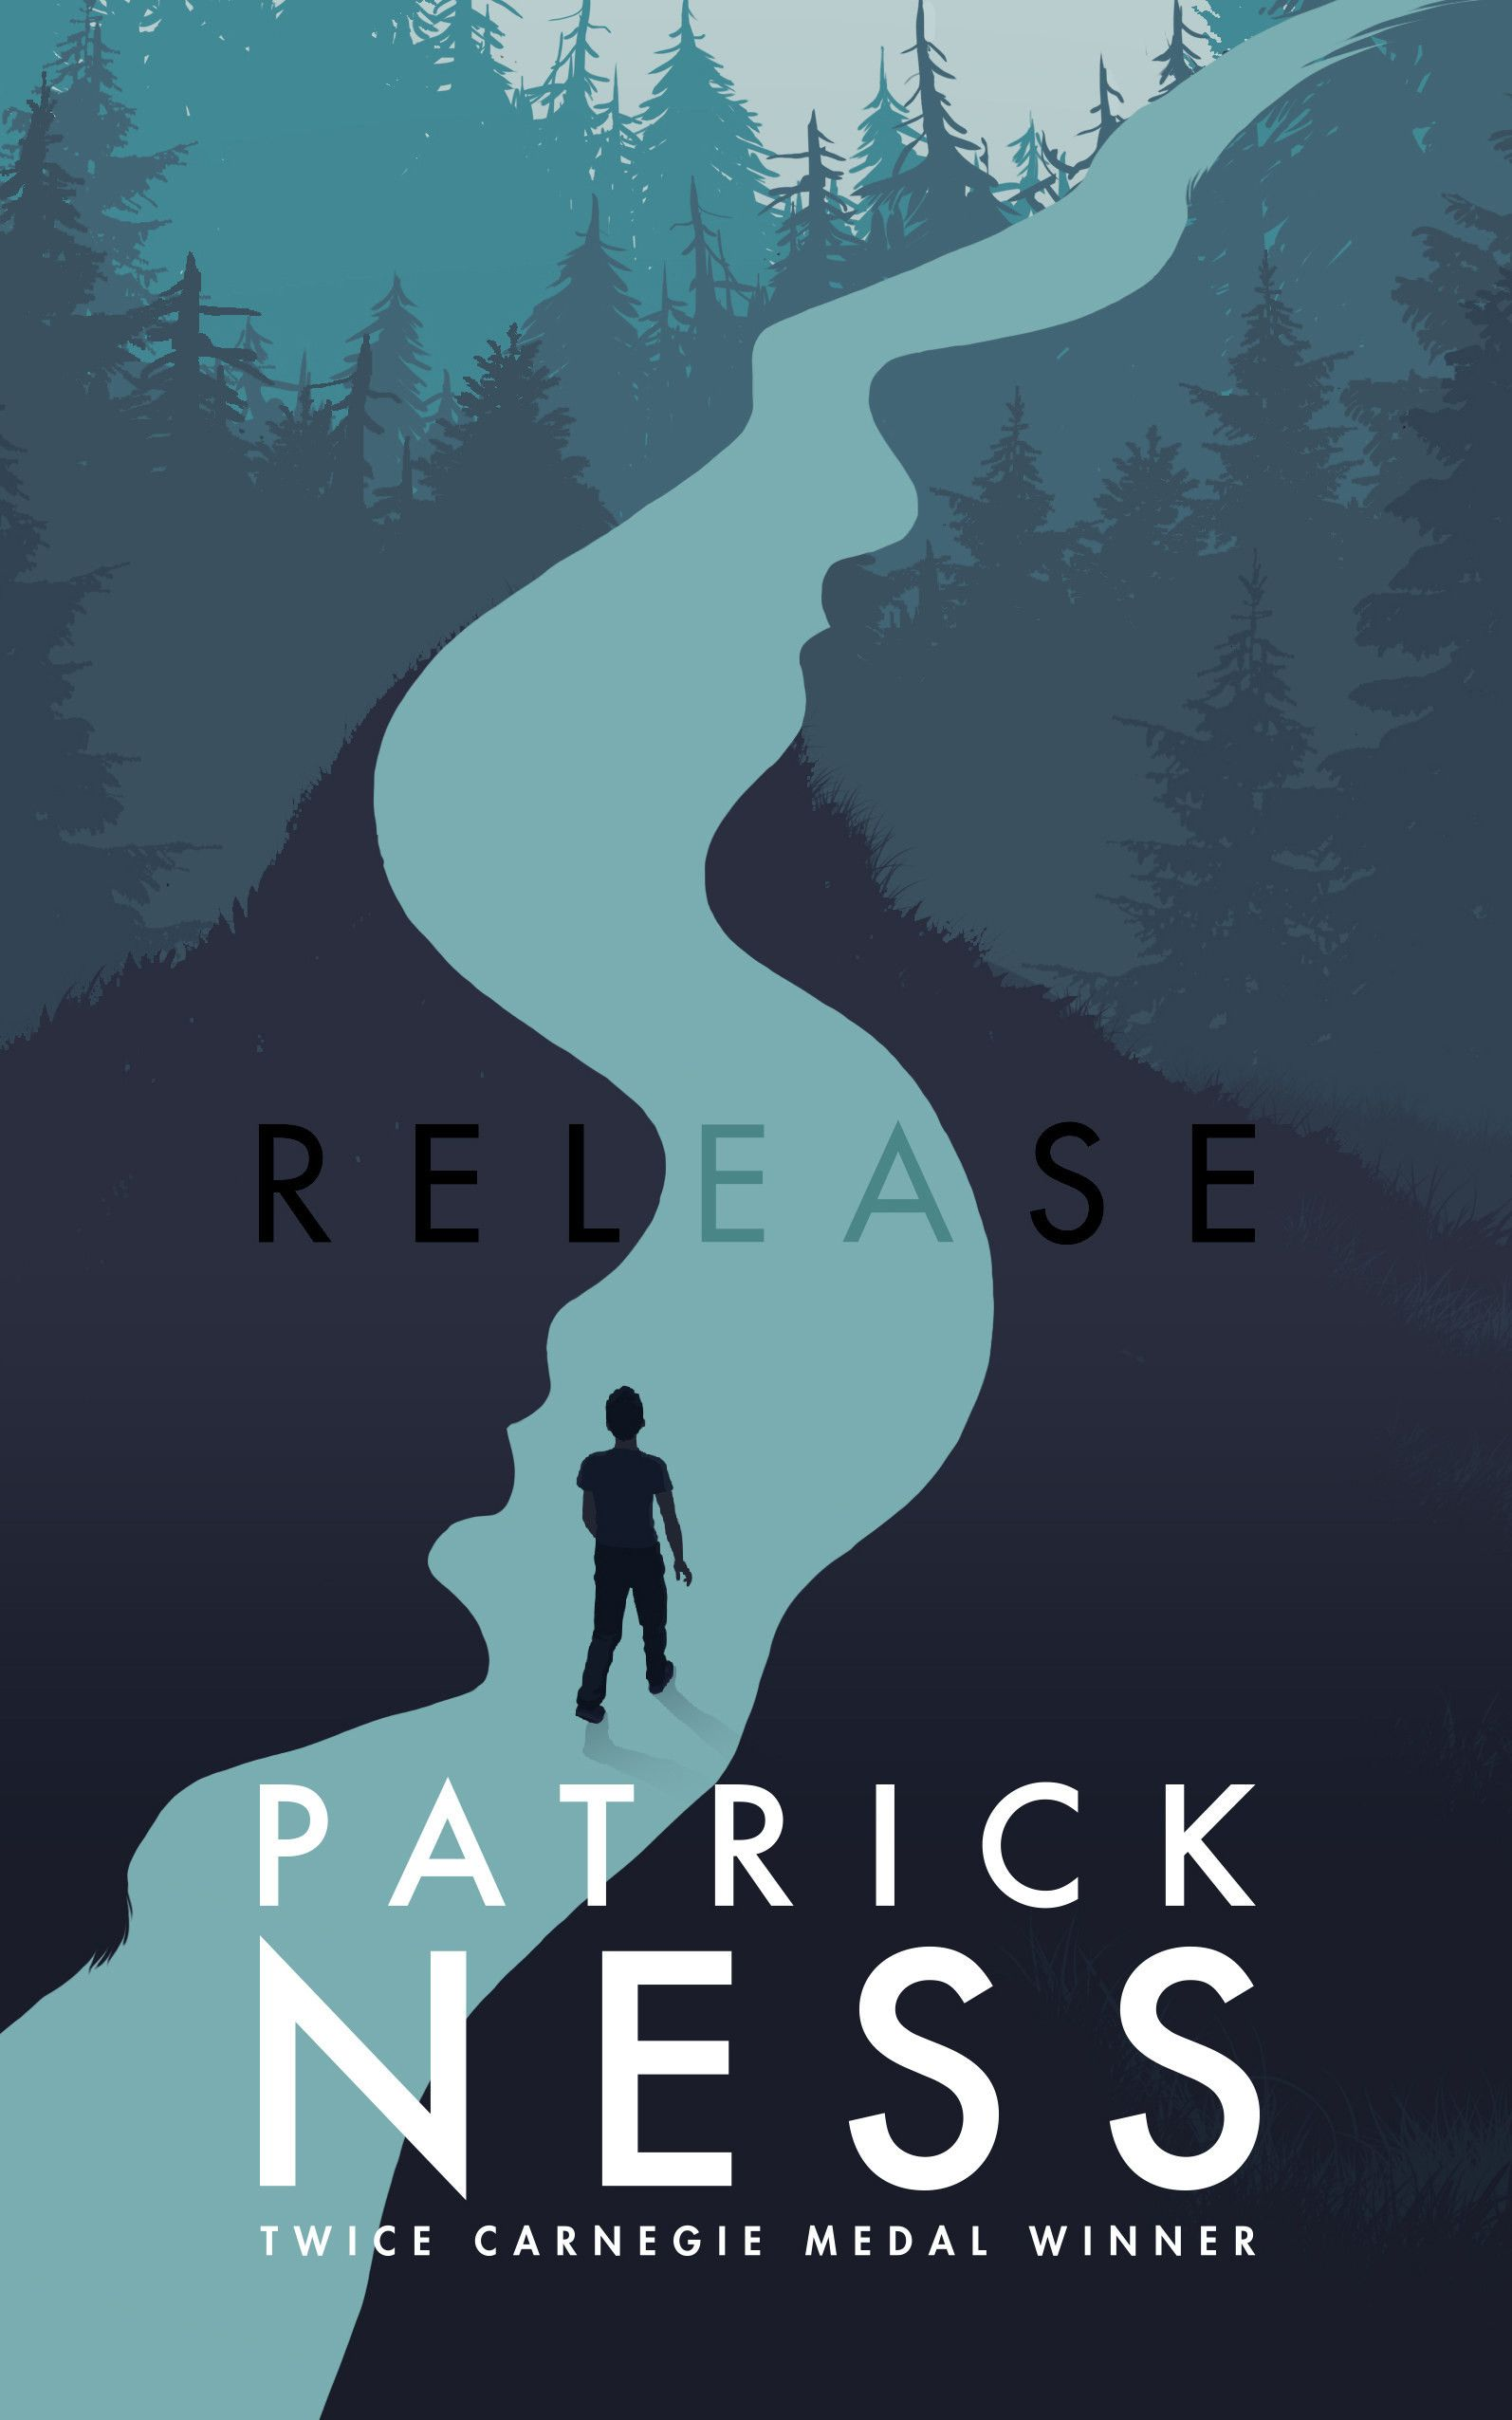 Exclusive Here S The Cover Of Patrick Ness S New Book Ya Book Covers Book Cover Design Inspiration Book Cover Design